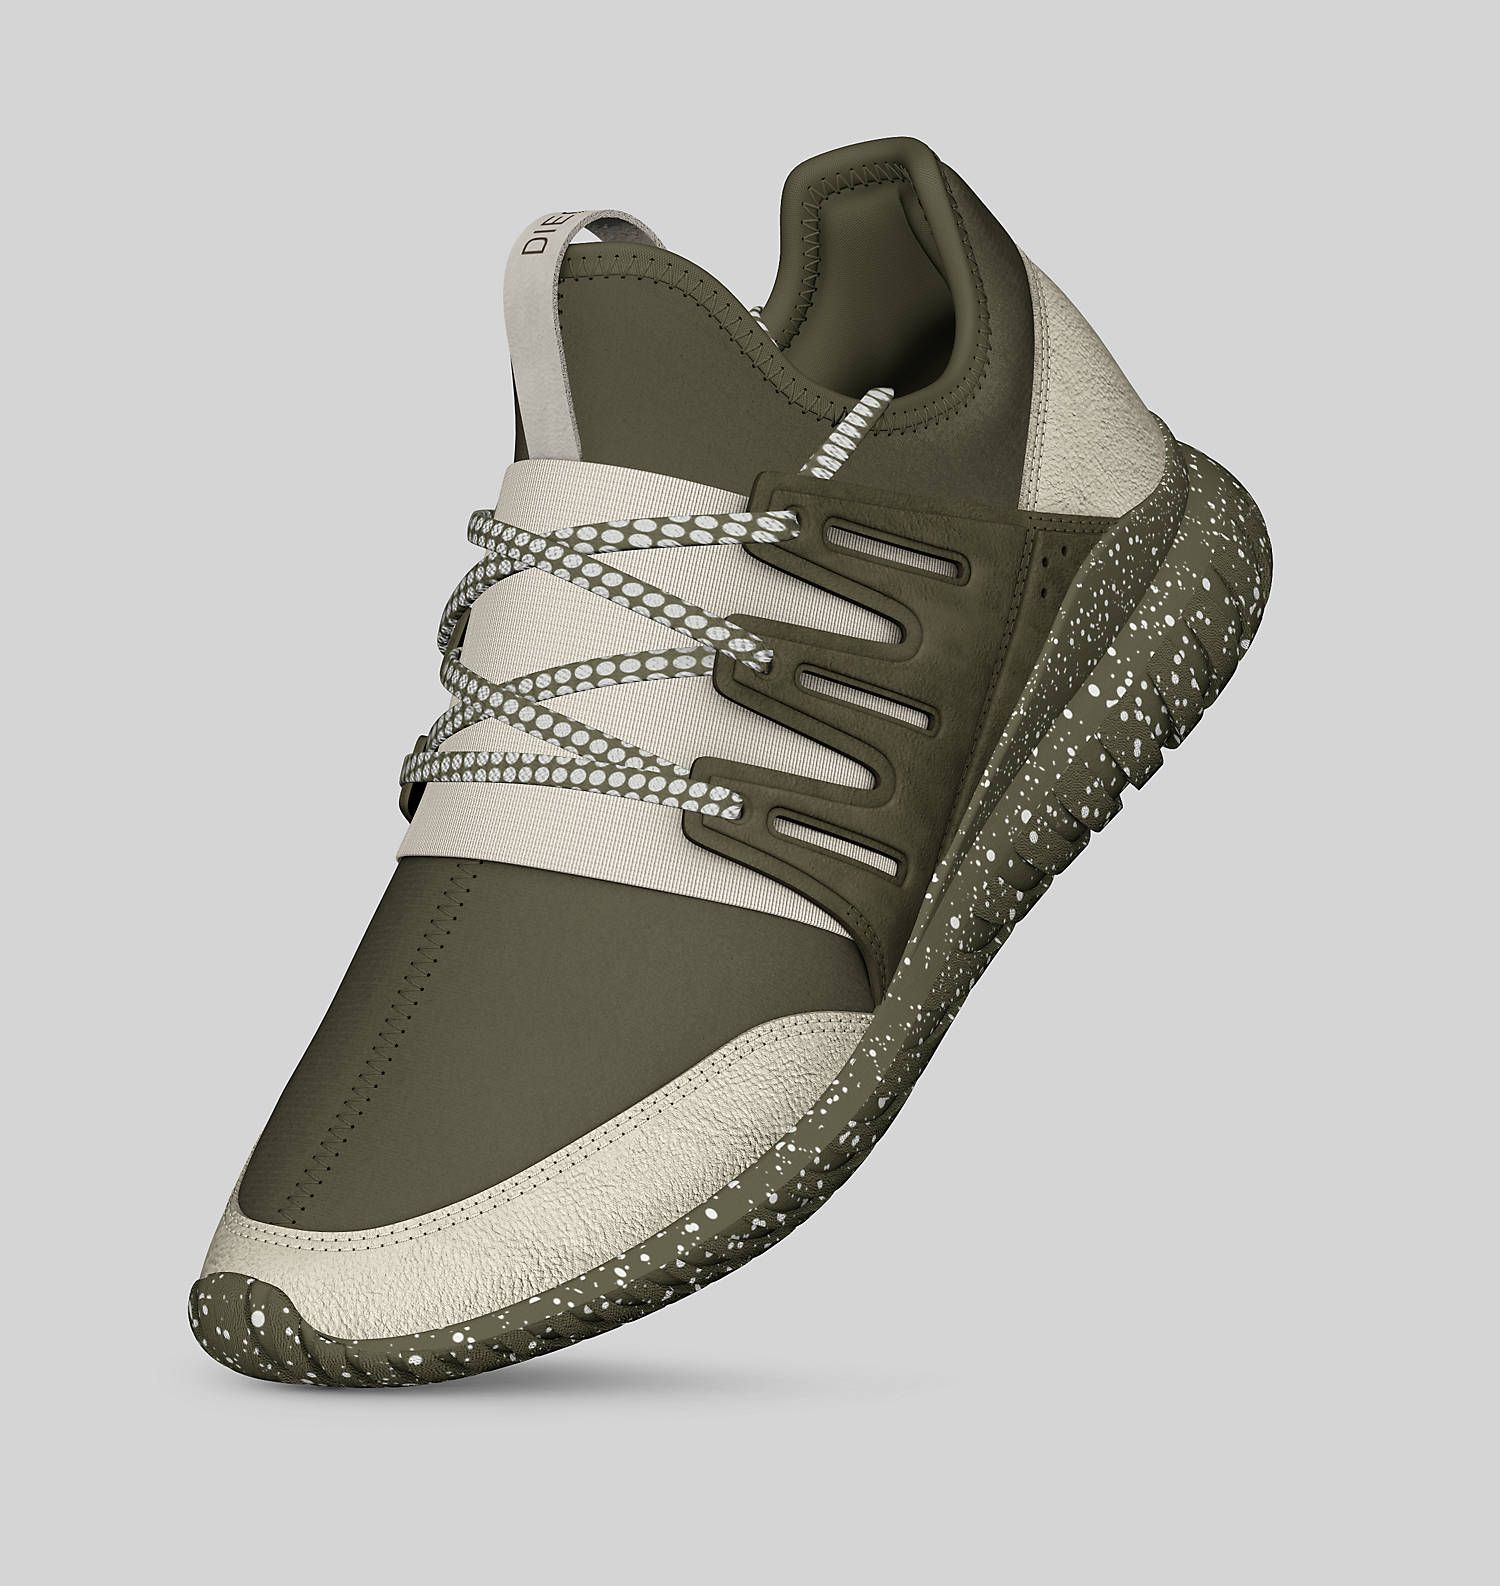 Adidas Tubular off white and olive green custom sneaker